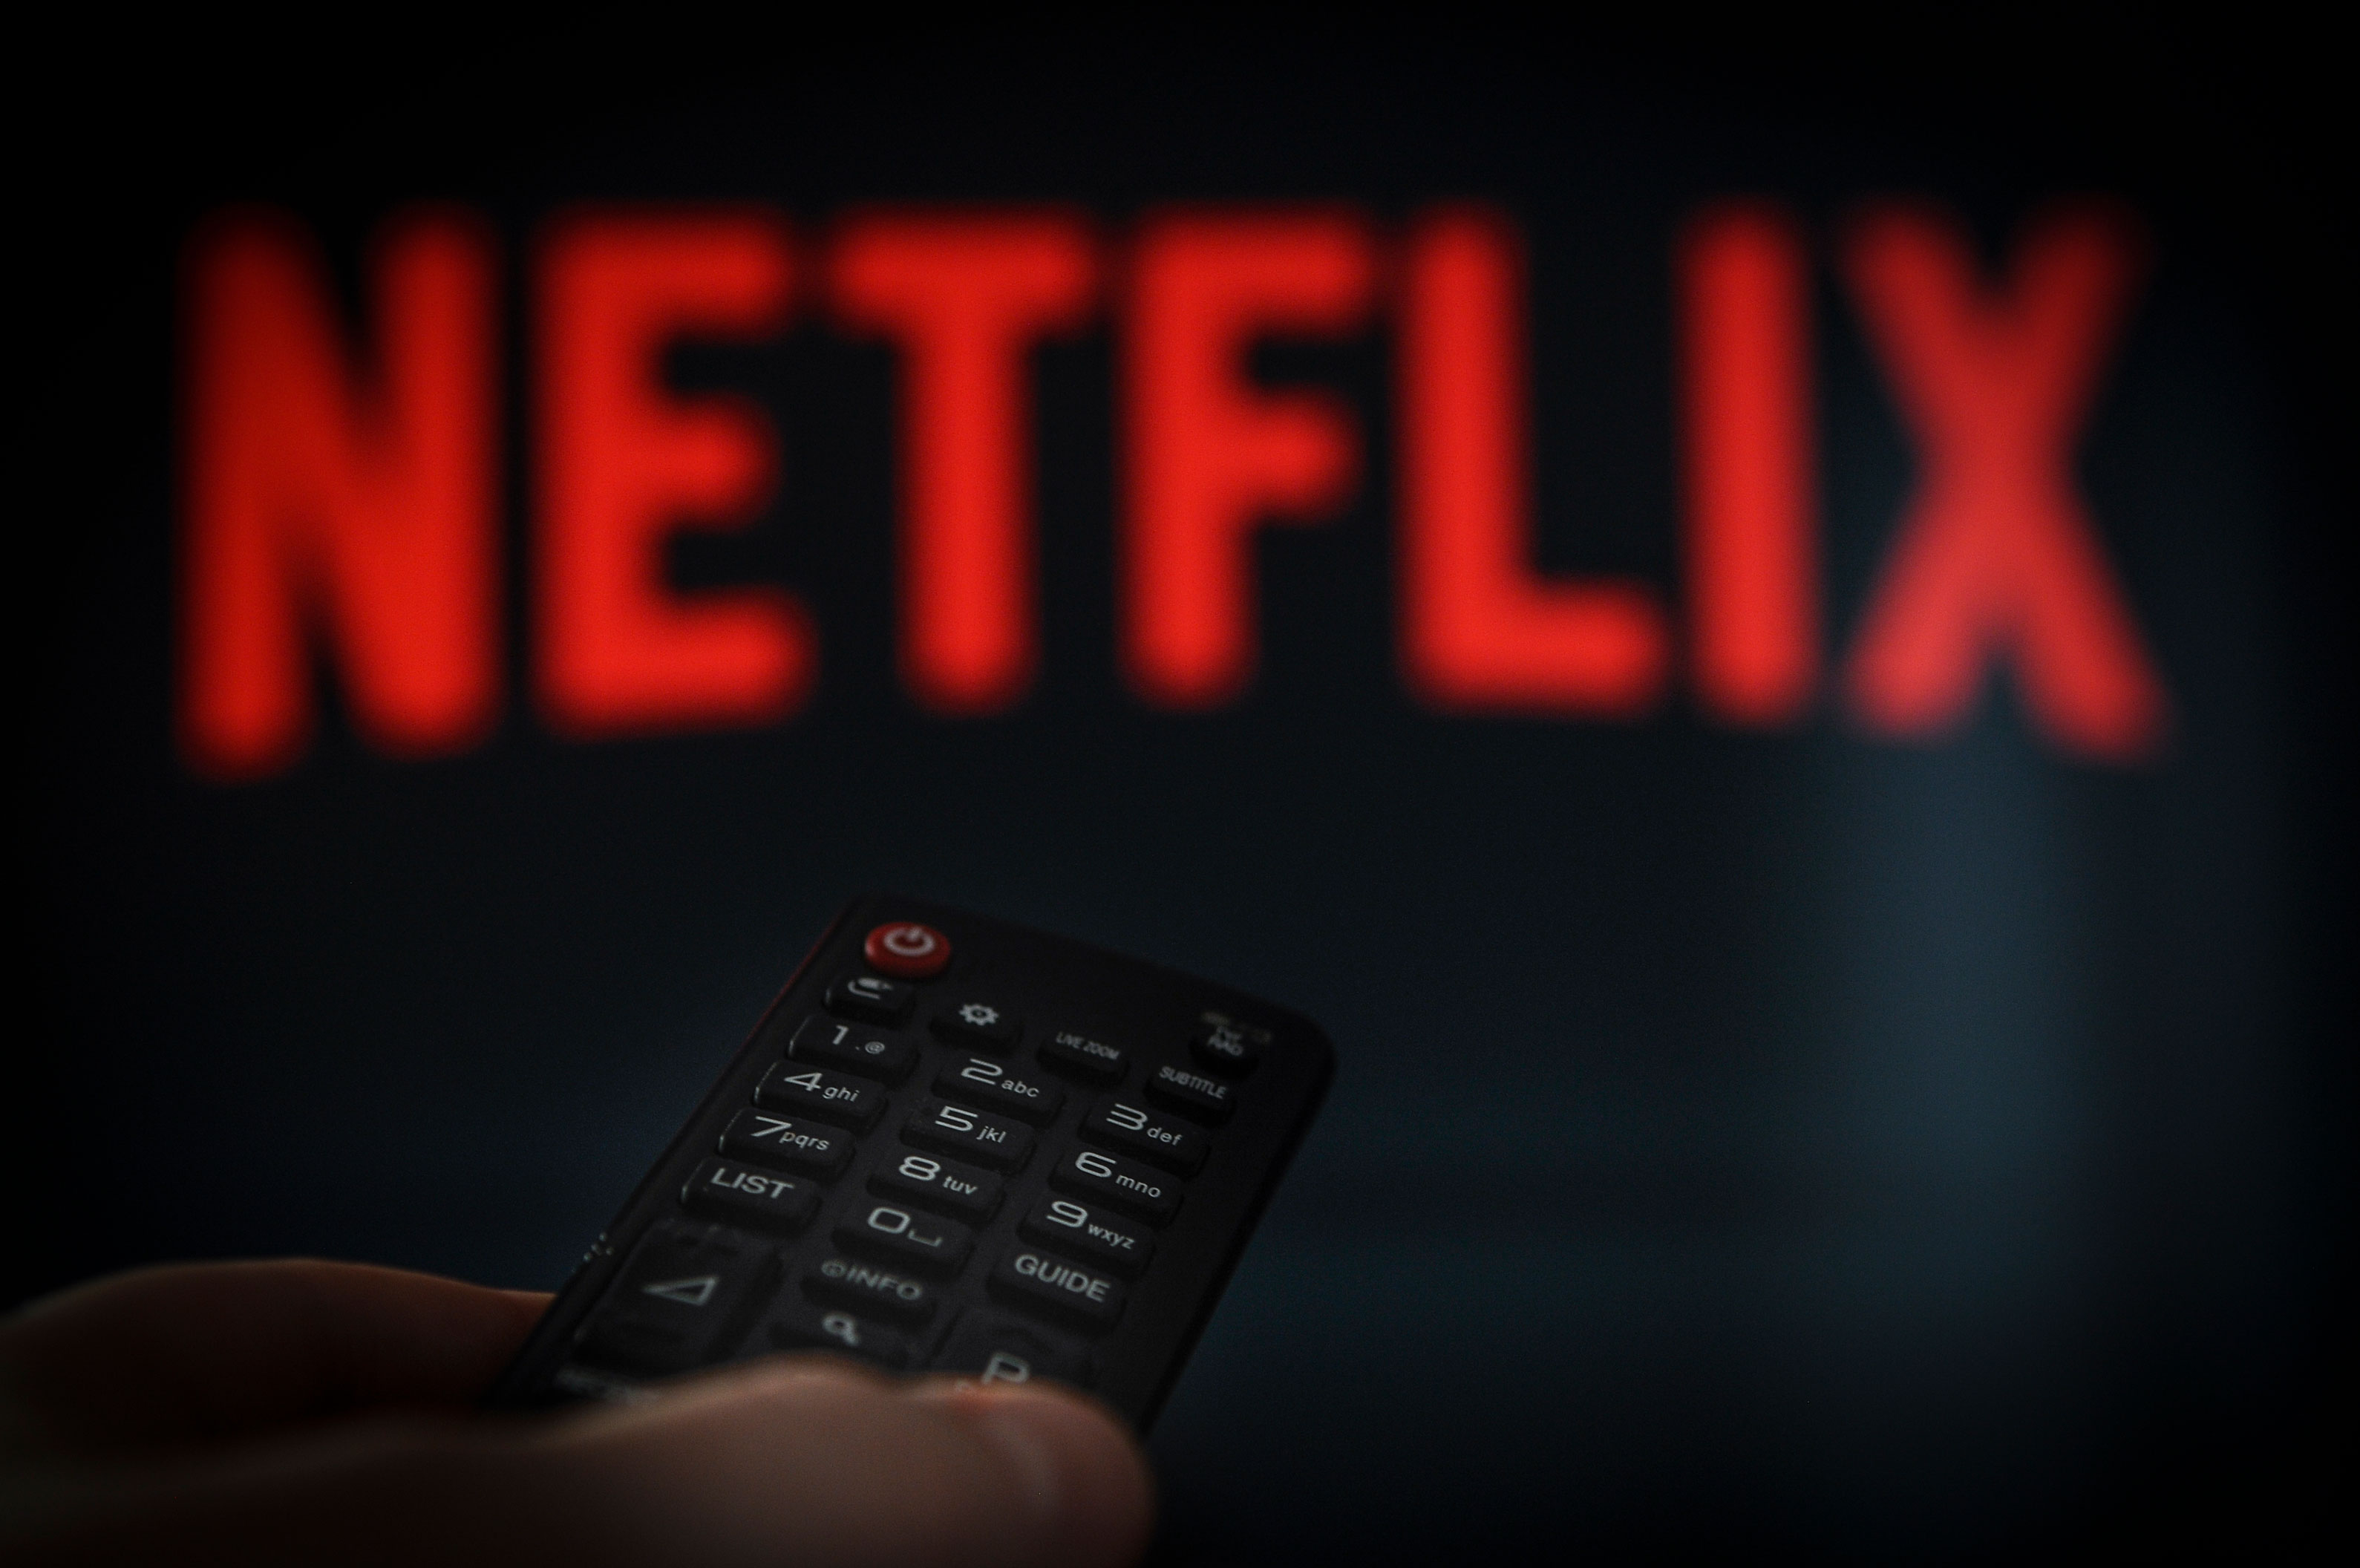 techcrunch.com - Jon Russell - Netflix is testing a mobile-only subscription to make its service more affordable